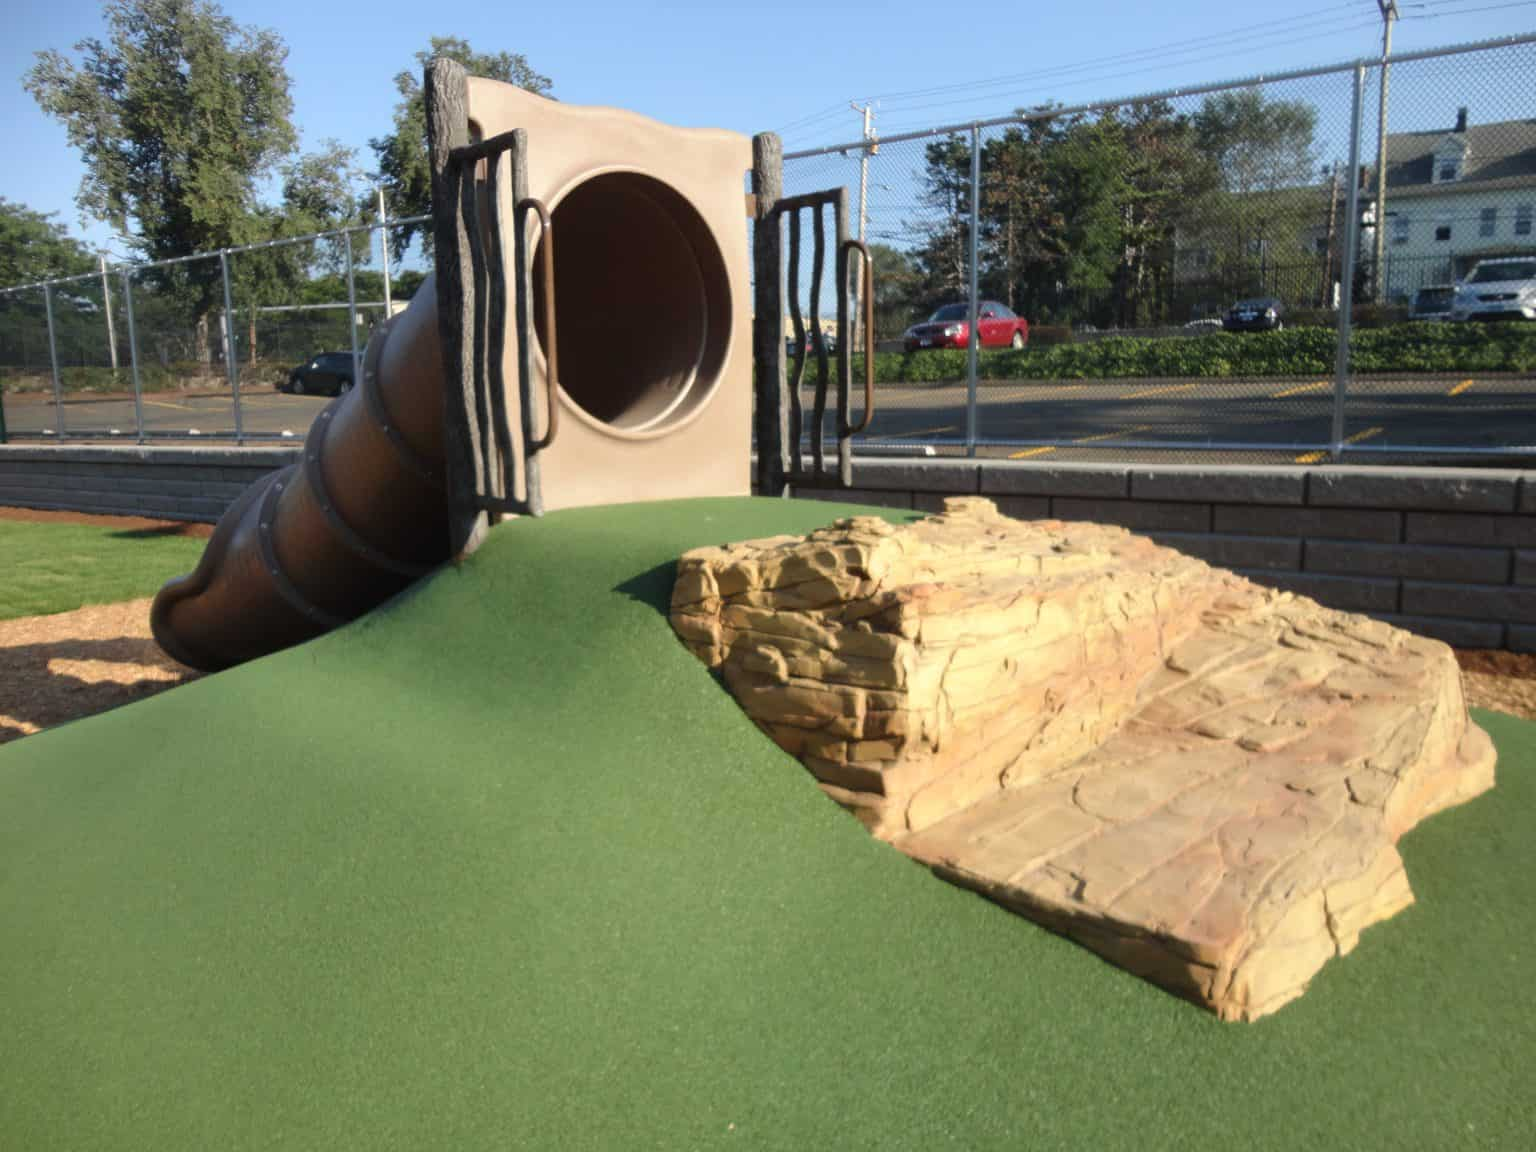 phyllis-bodel-daycare-playground-new-haven-ct_17939865080_o-1536x1152